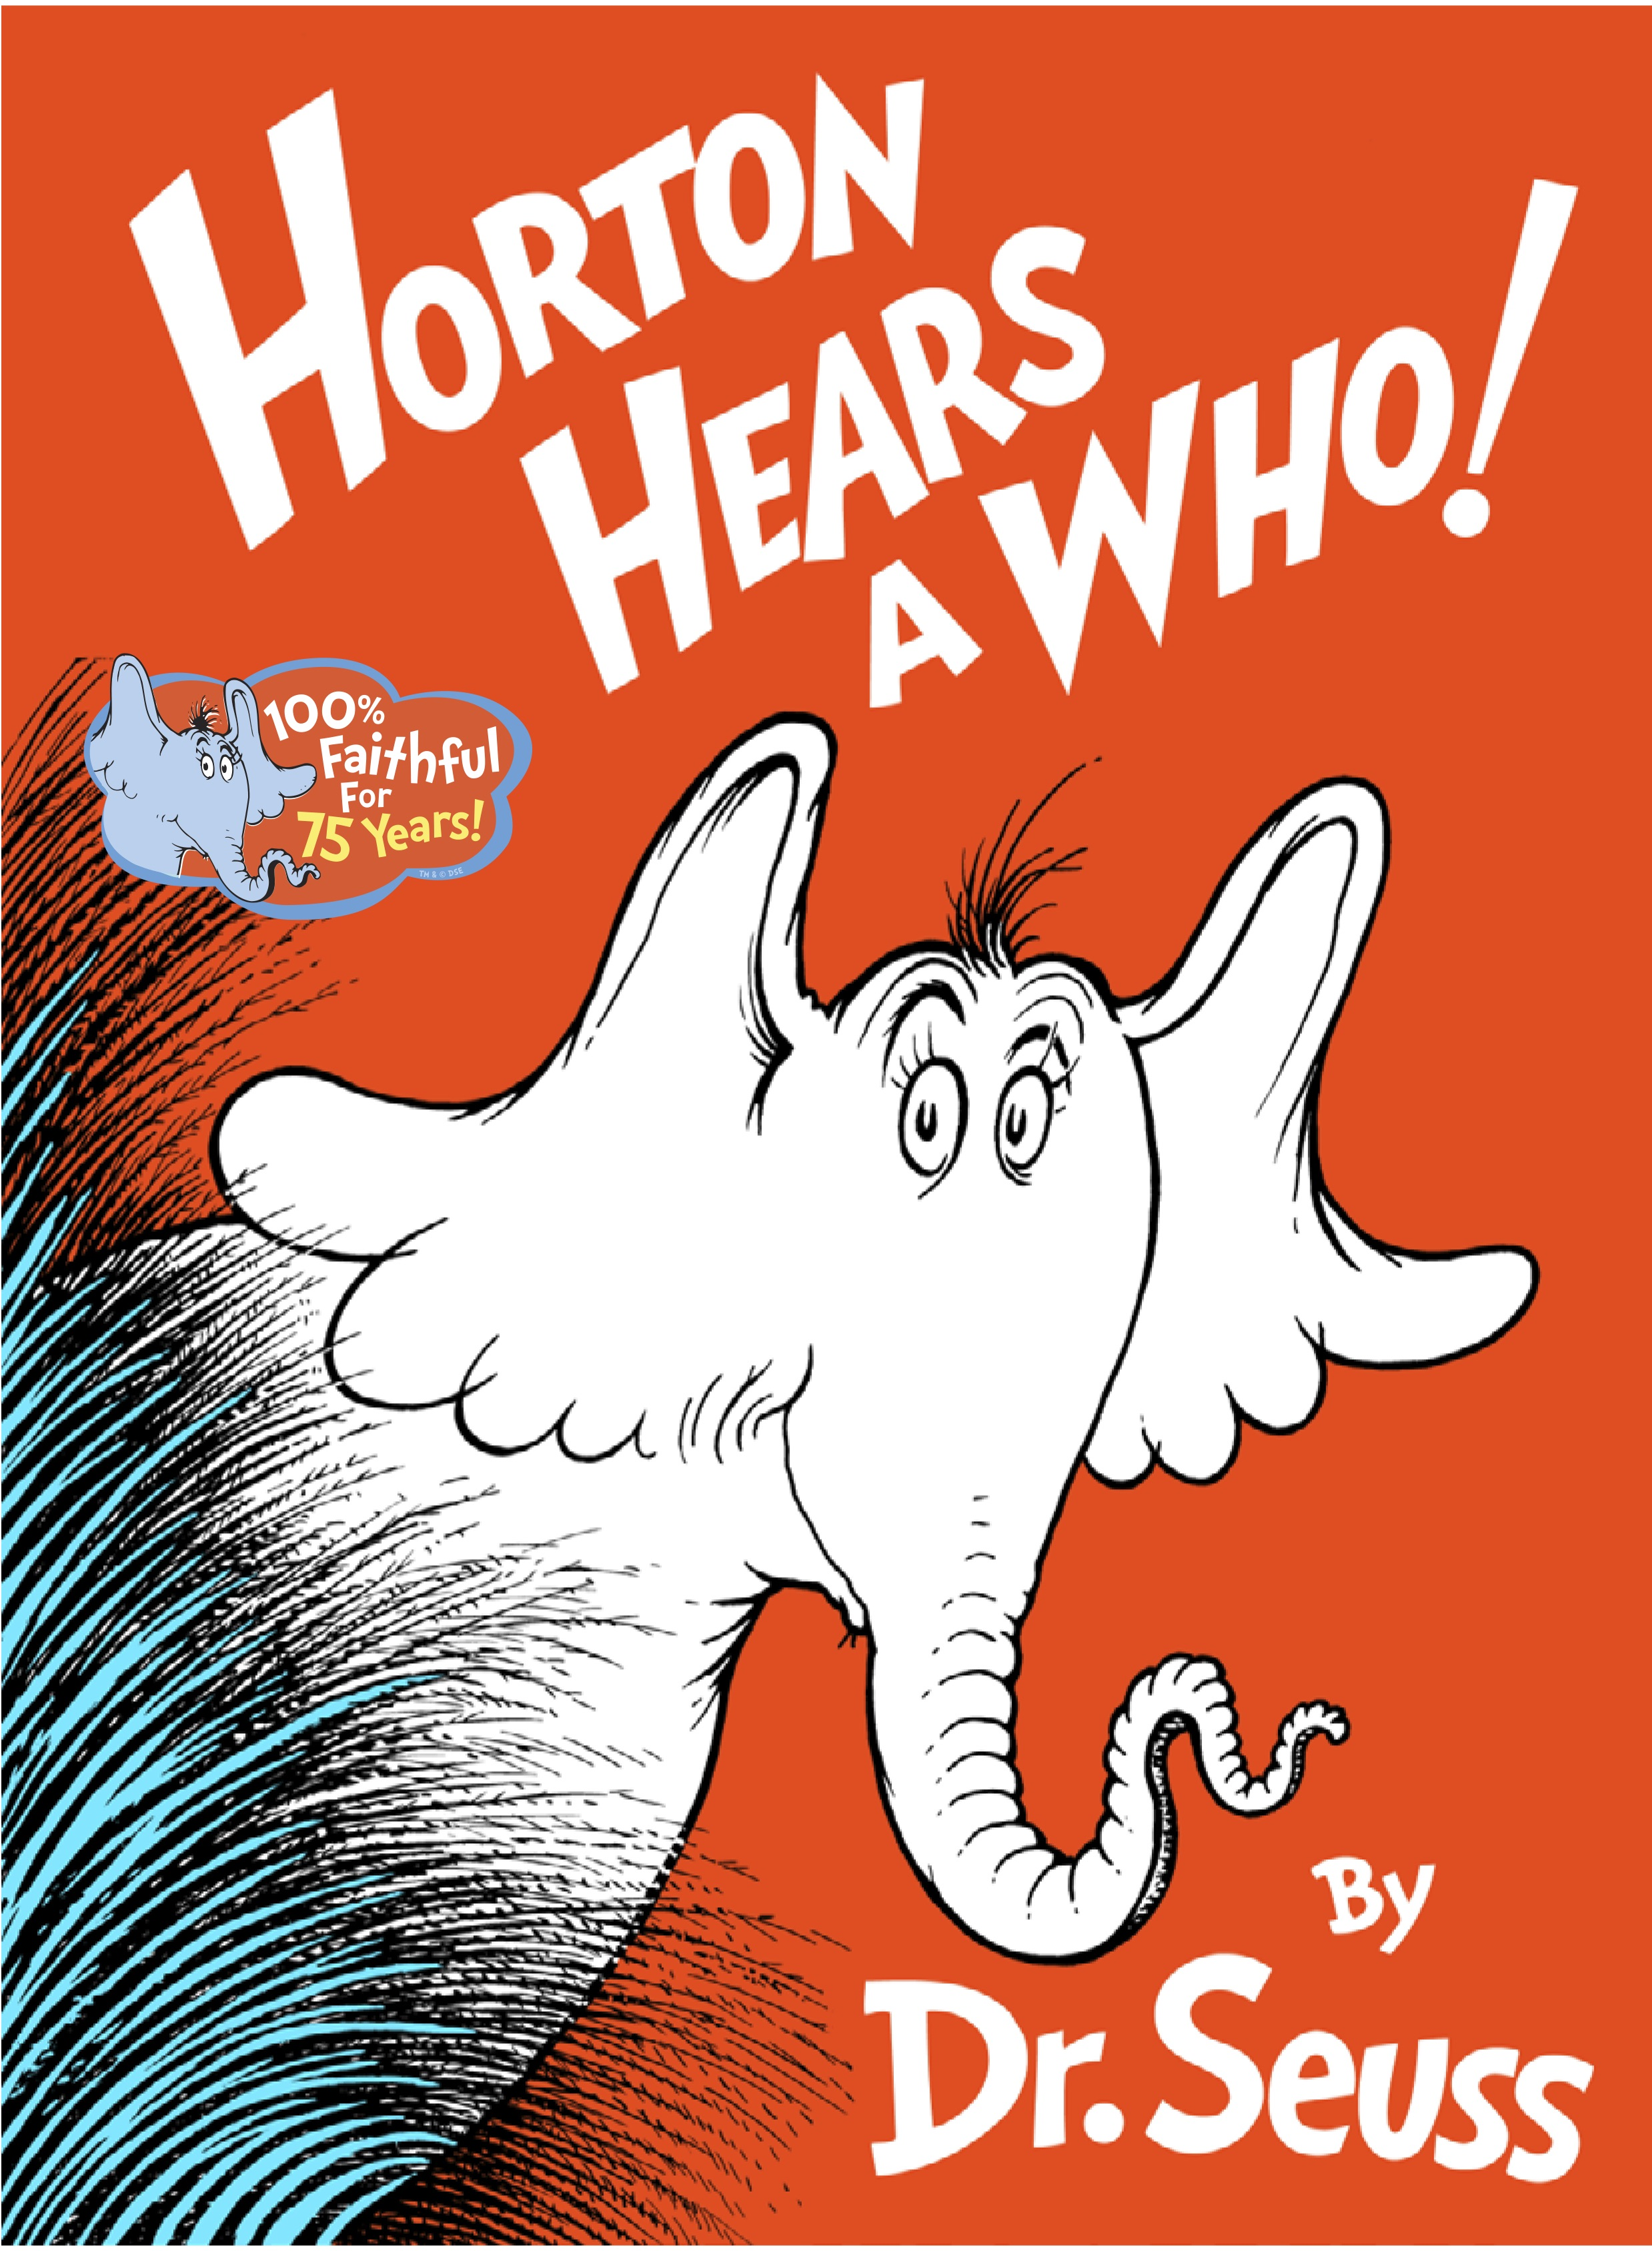 10 Best Dr Seuss Books To Read With Your Kids